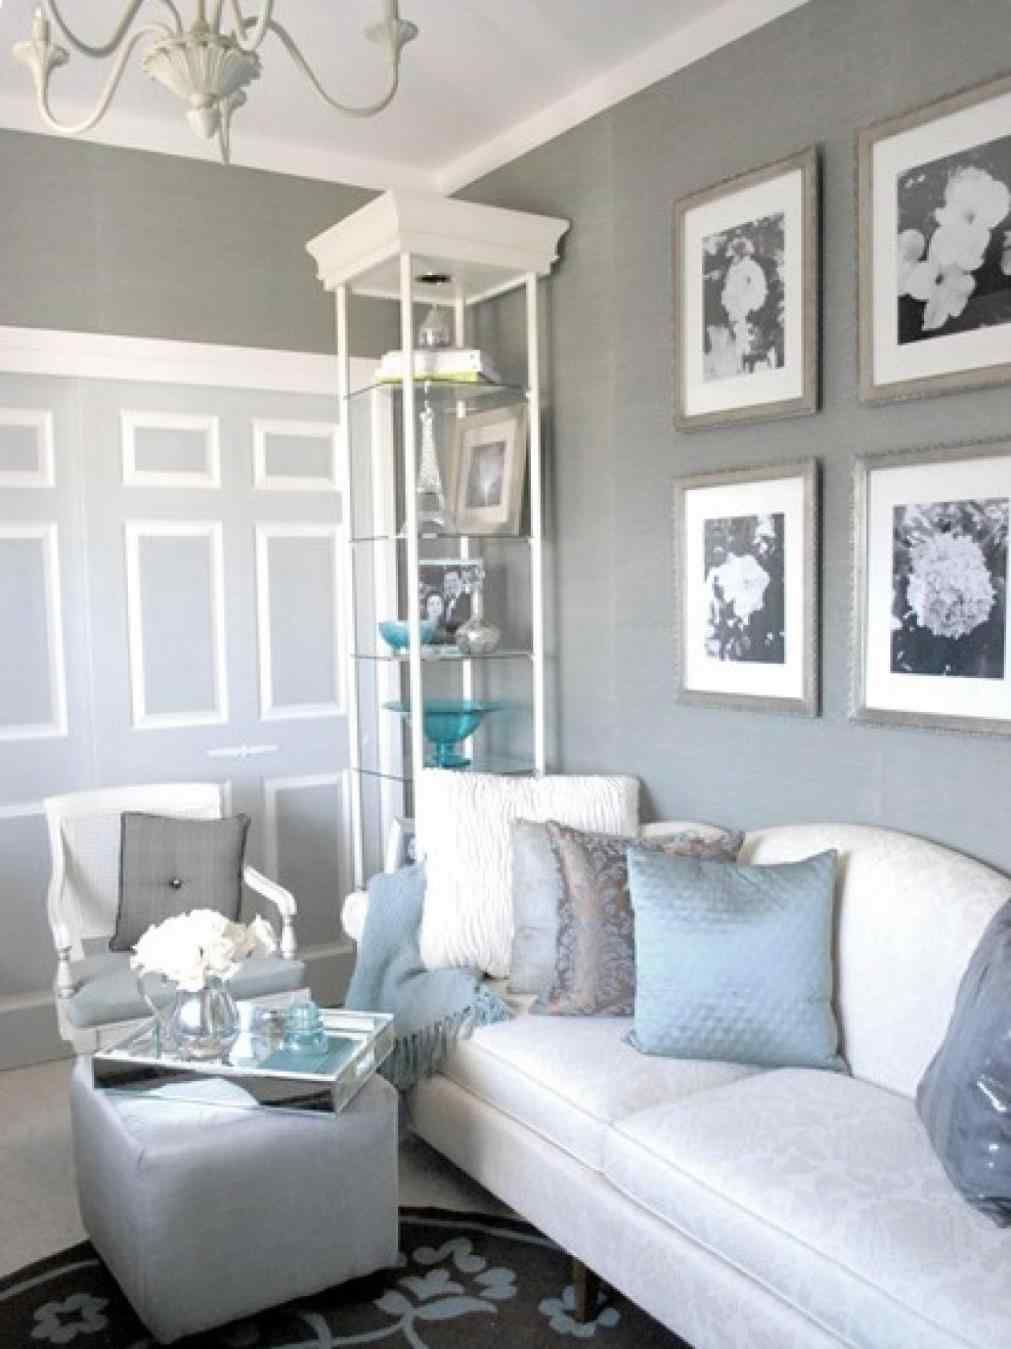 Light Blue And Grey Bedroom Ideas Light Teal Room Ideas Pink Silver Bedroom Ideas White Silver Living Room Color Schemes Living Room Grey Living Room Color